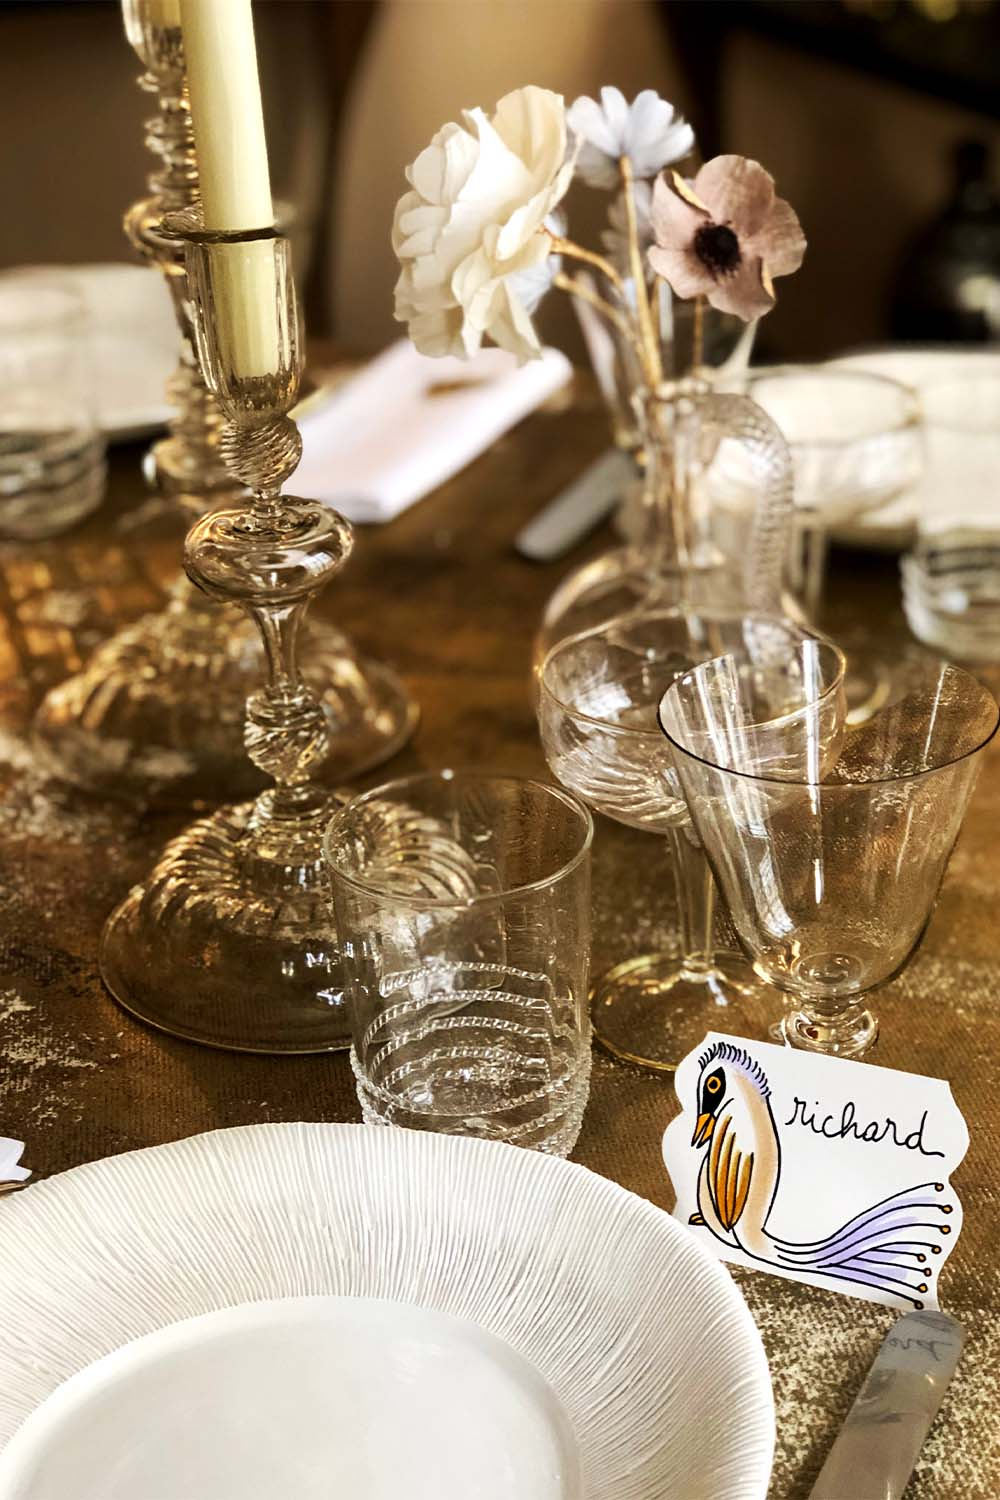 The Invisible Collection Christmas Dinner Set for 12 Diner en Ville